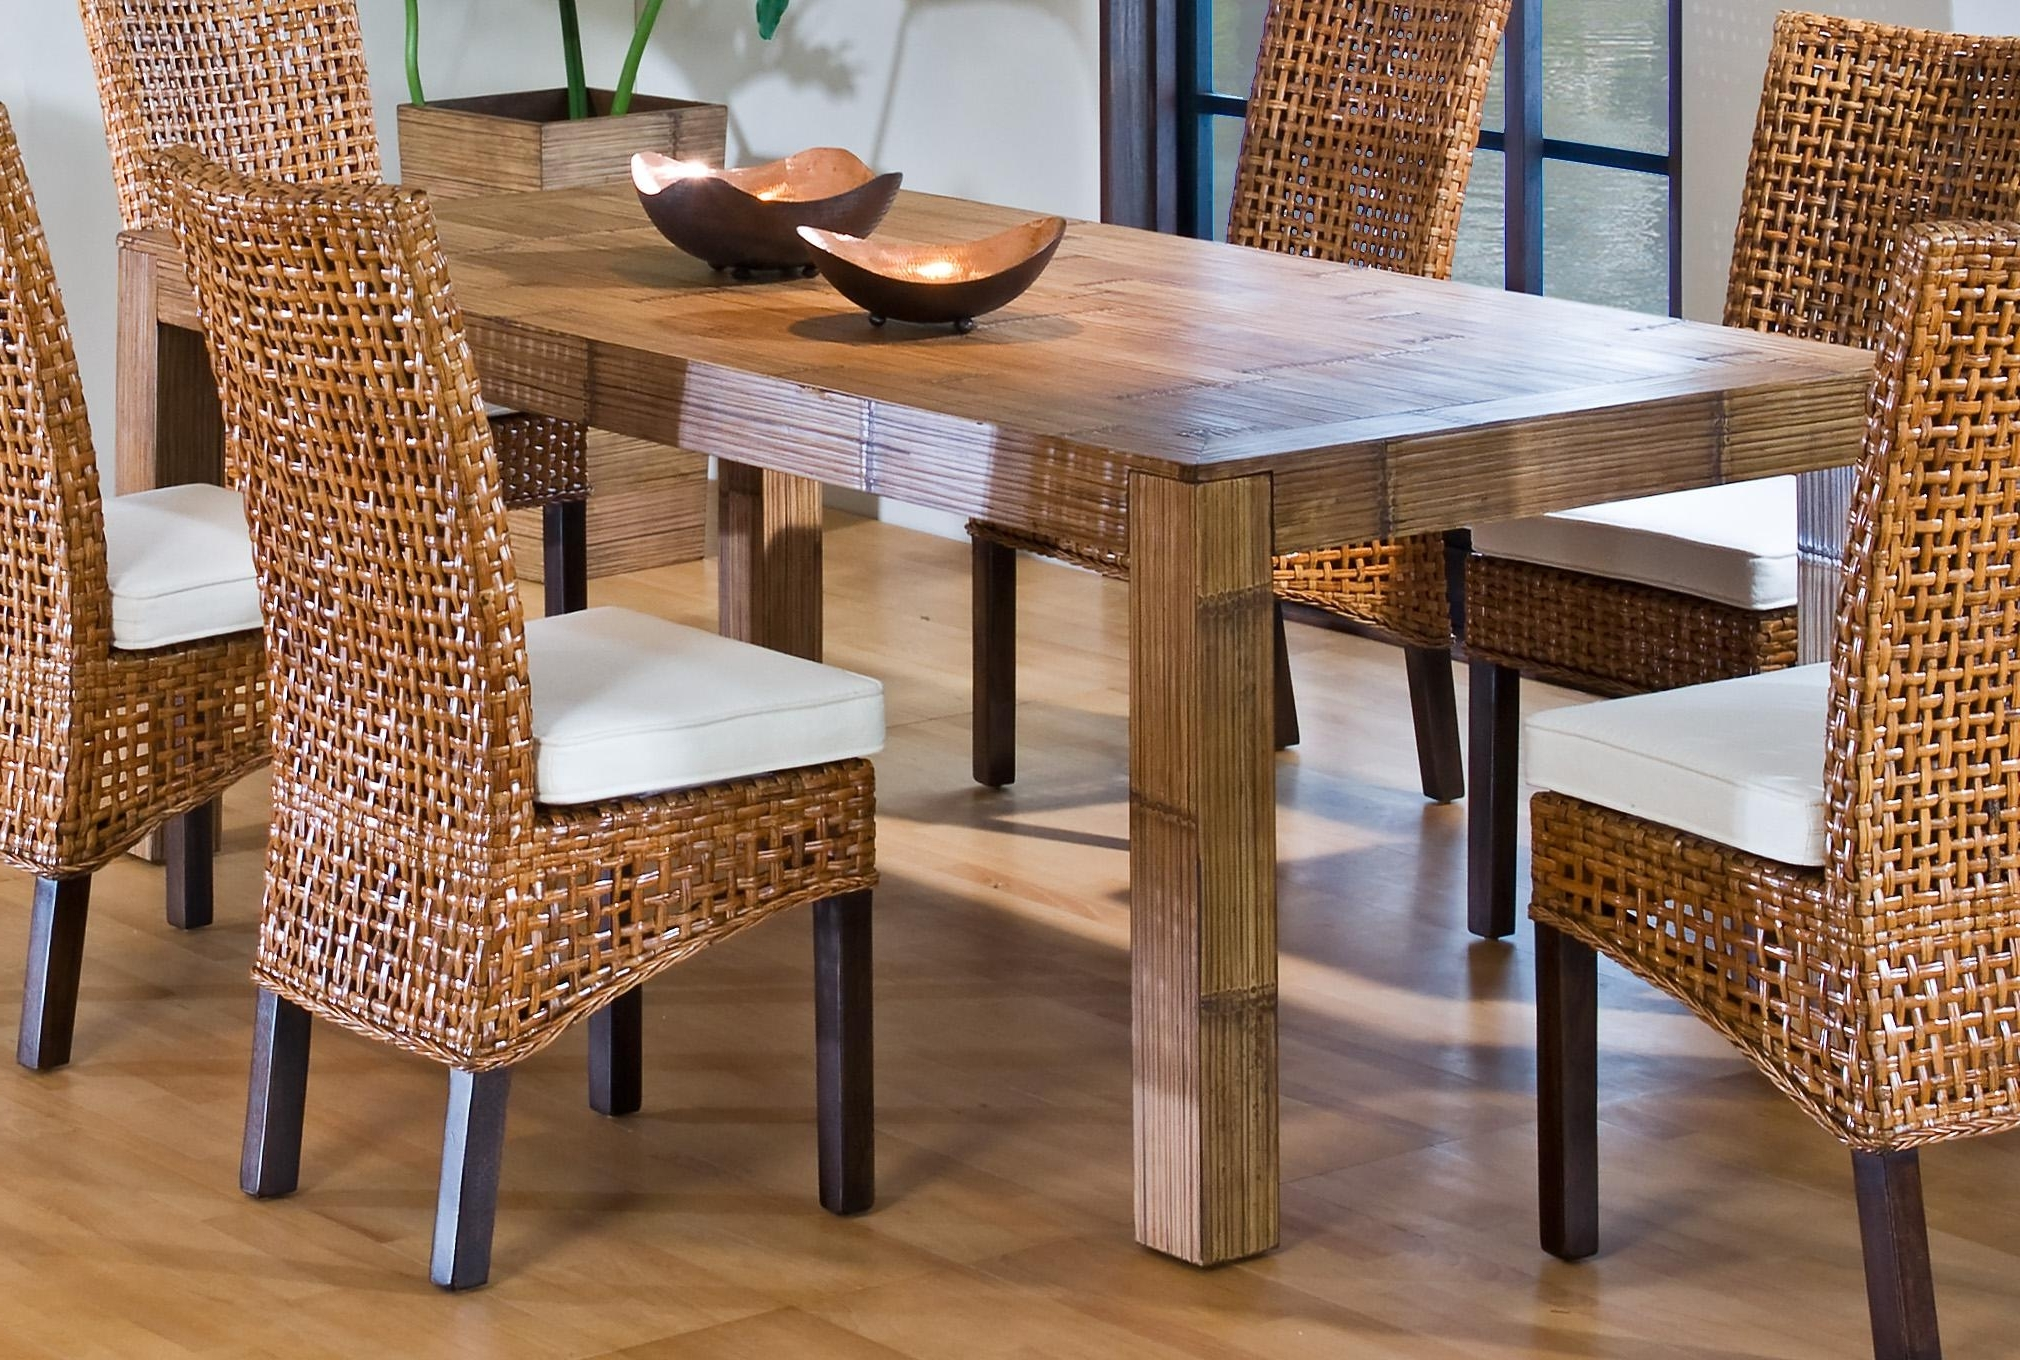 Most Recently Released Dining Table Indoor Wicker Dining Table Dining Table And 8 Chairs Throughout Rattan Dining Tables And Chairs (View 3 of 25)